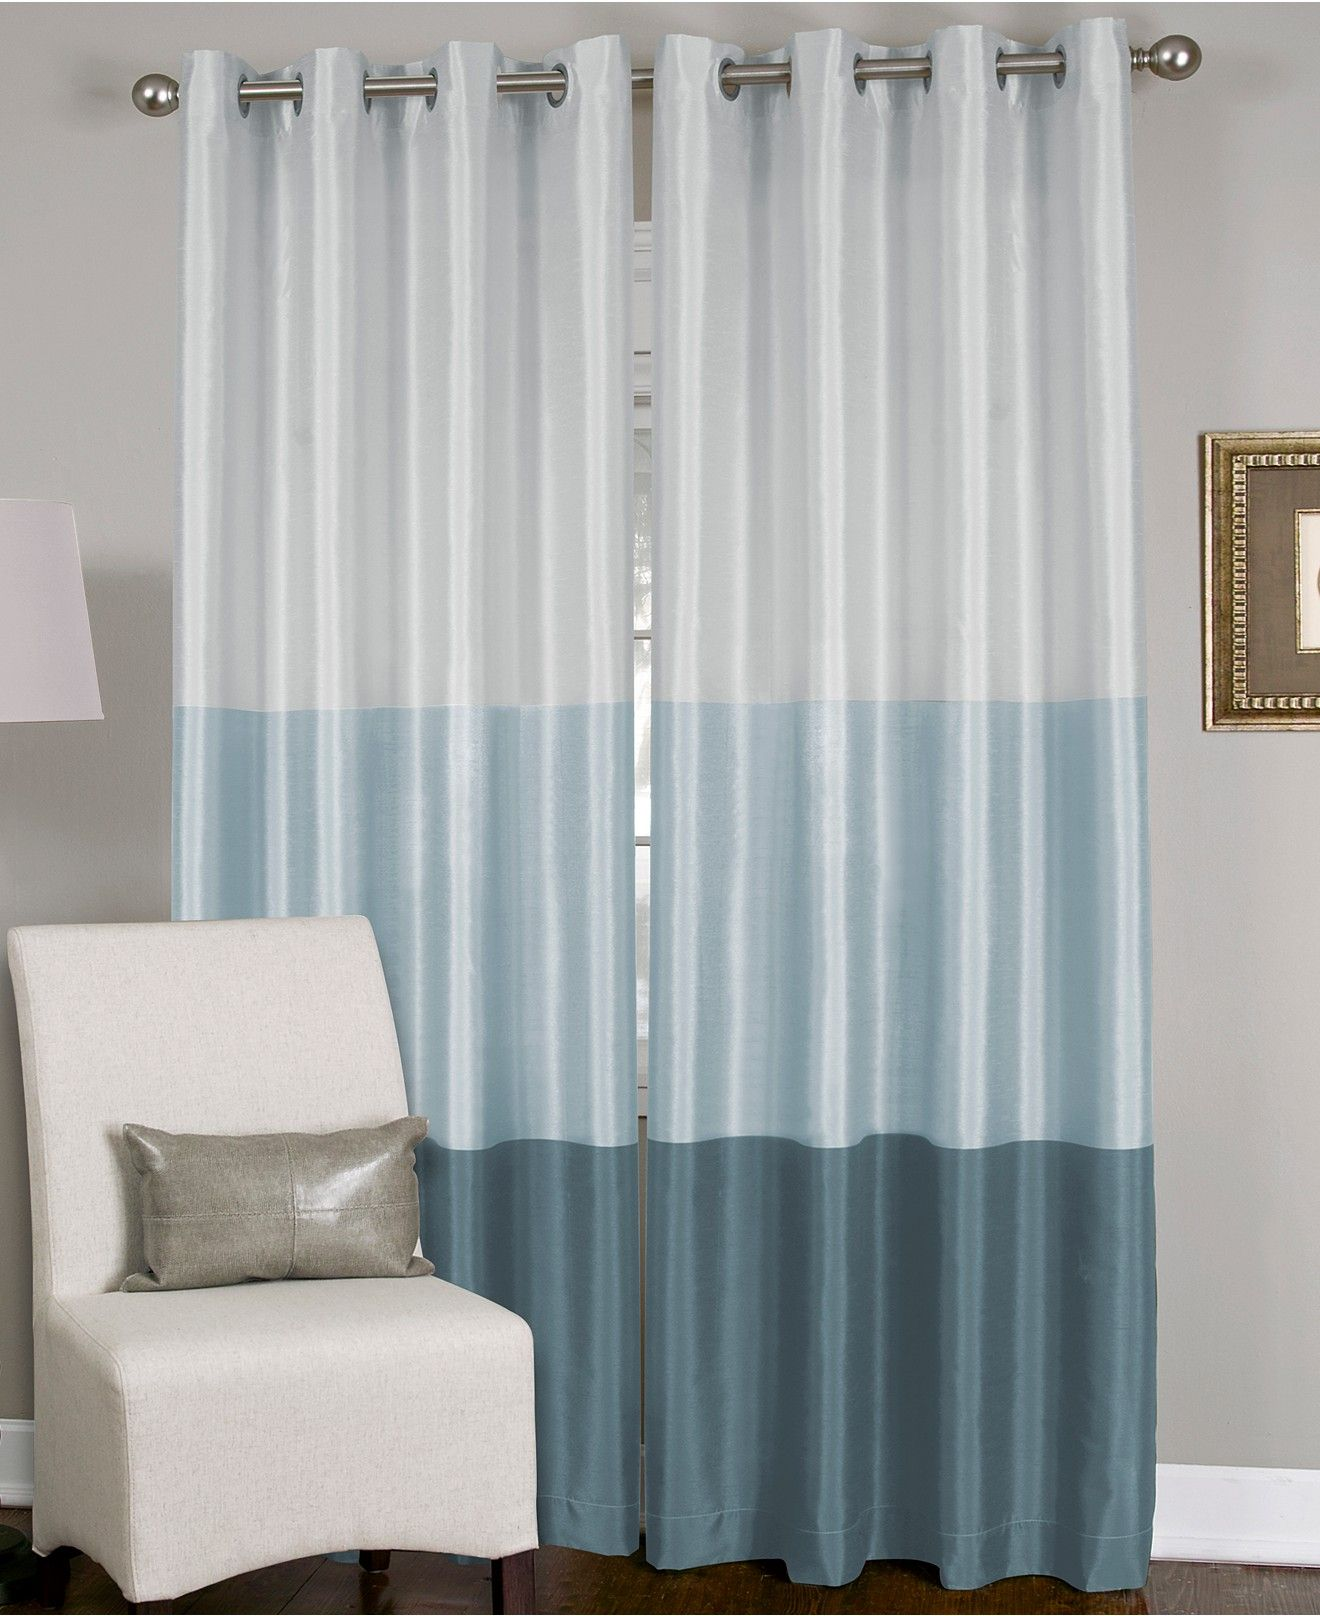 Window covering ideas  elrene trio chic window treatment collection  window treatments